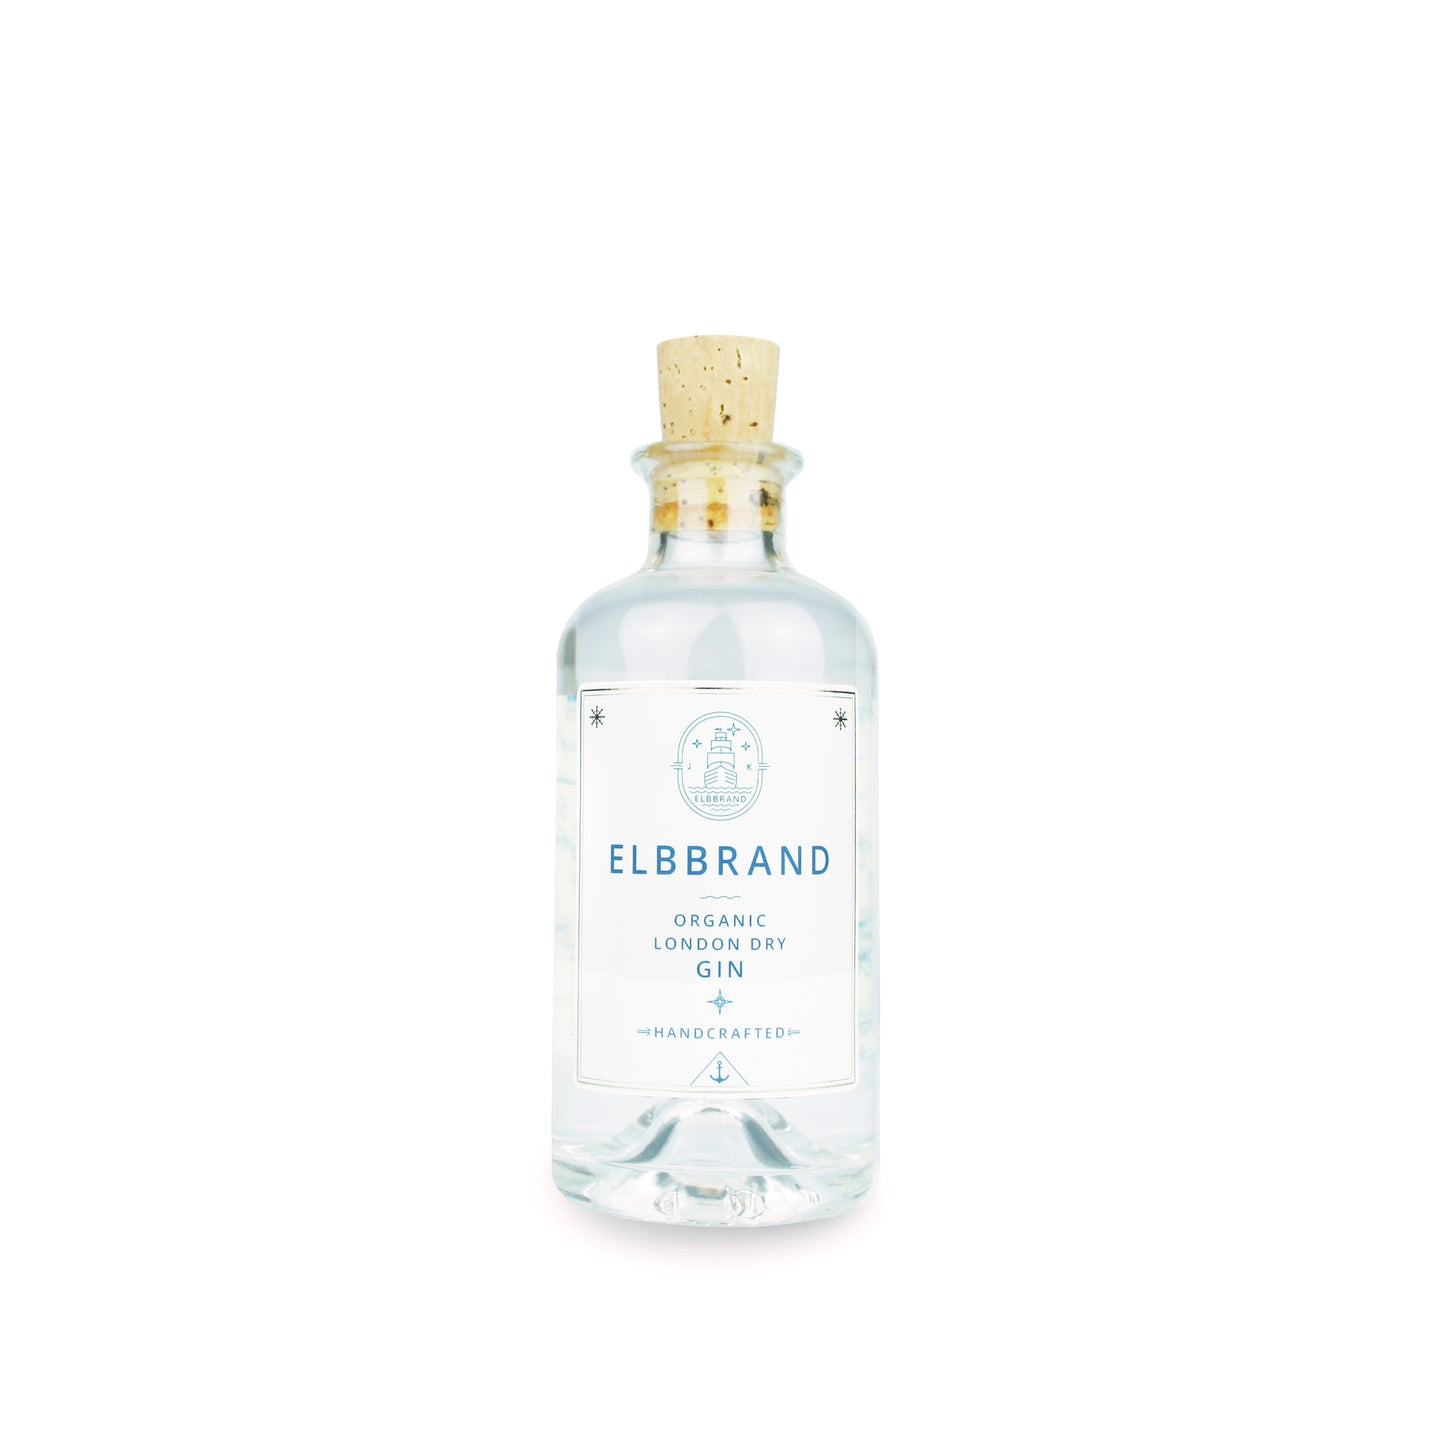 ELBBRAND LONDON DRY GIN – 200ML